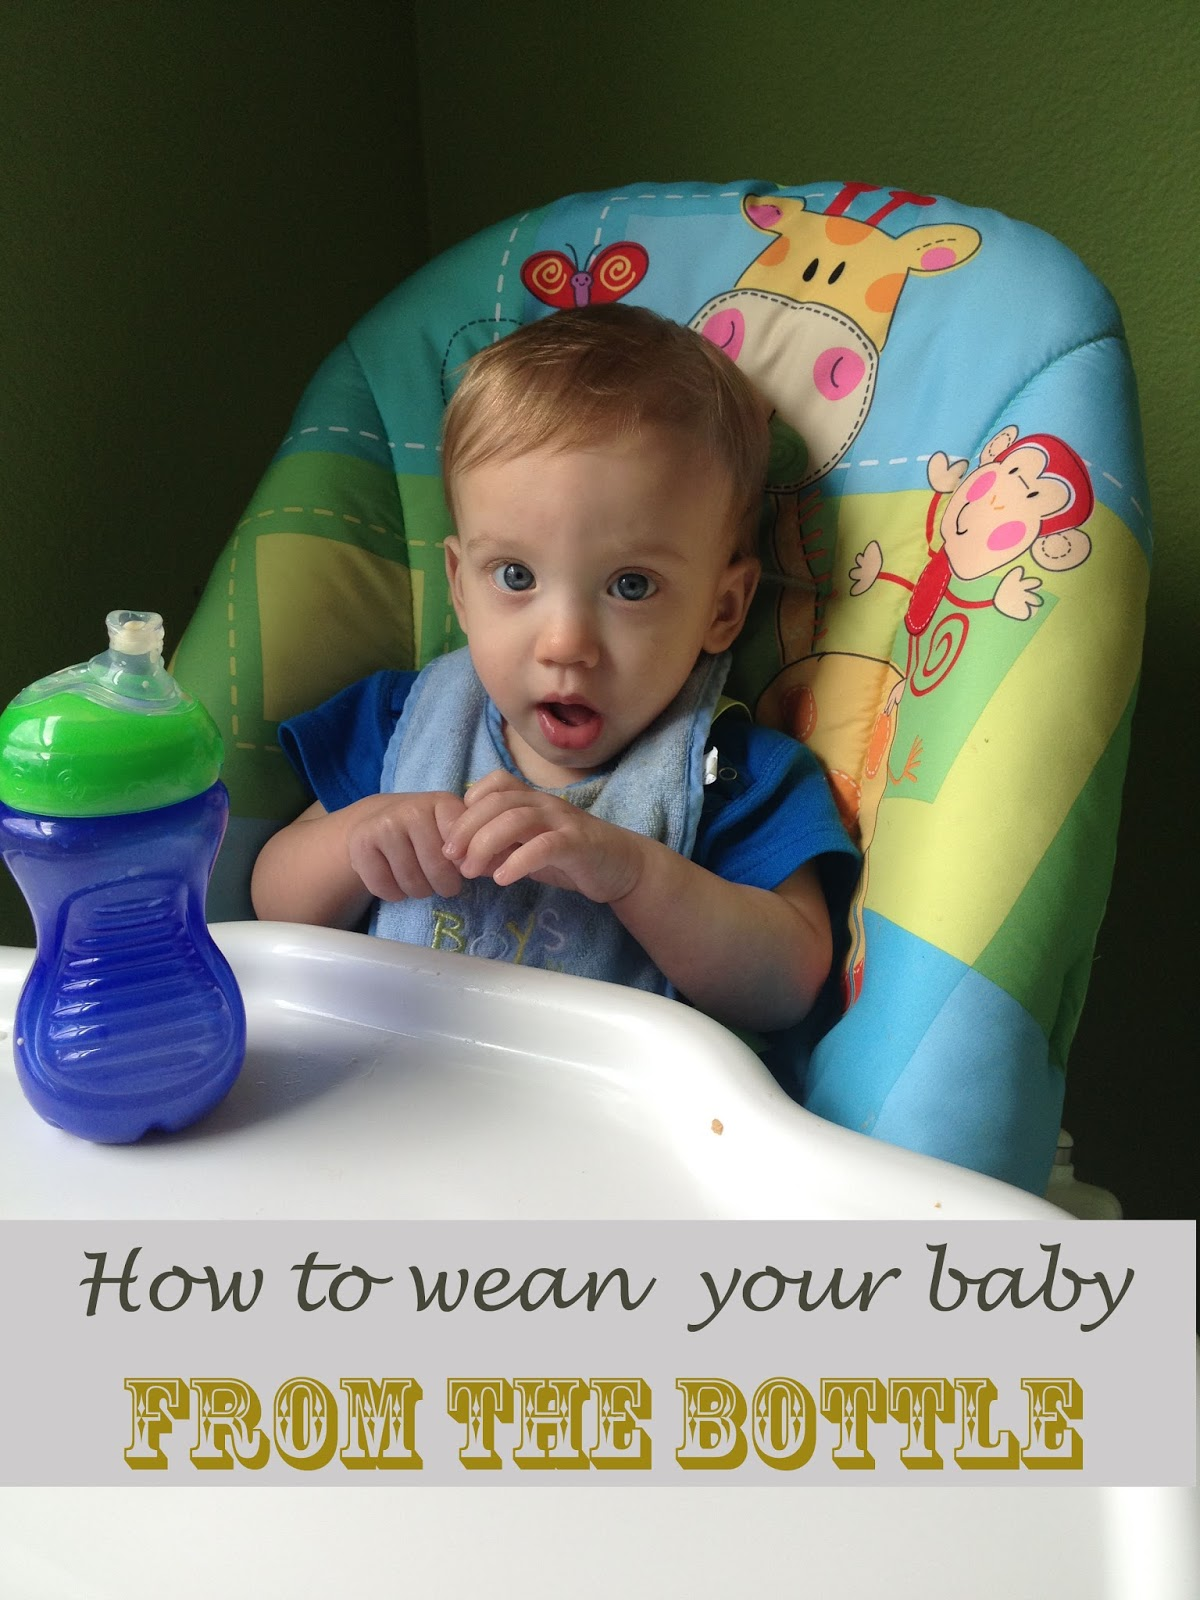 How to wean your baby from the bottle